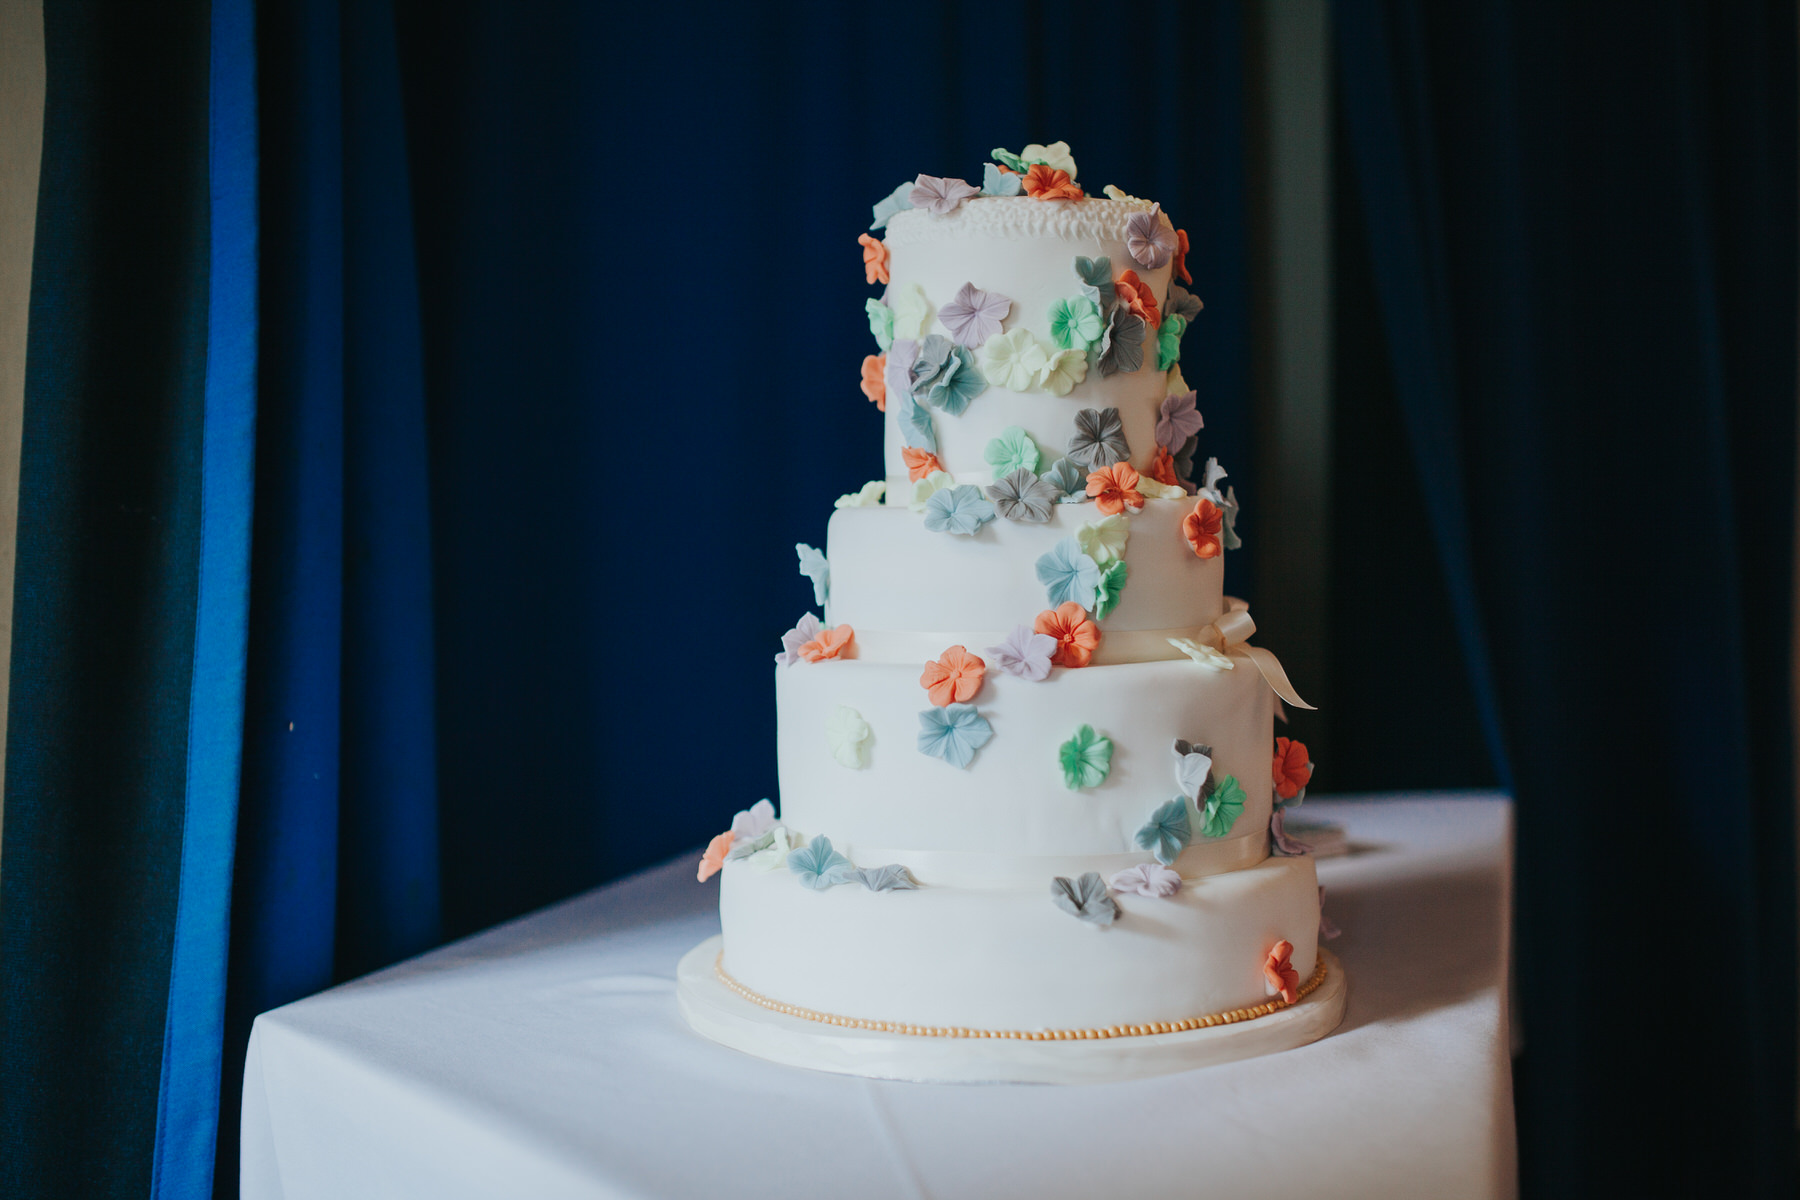 214 colourful flower covered wedding cake.jpg